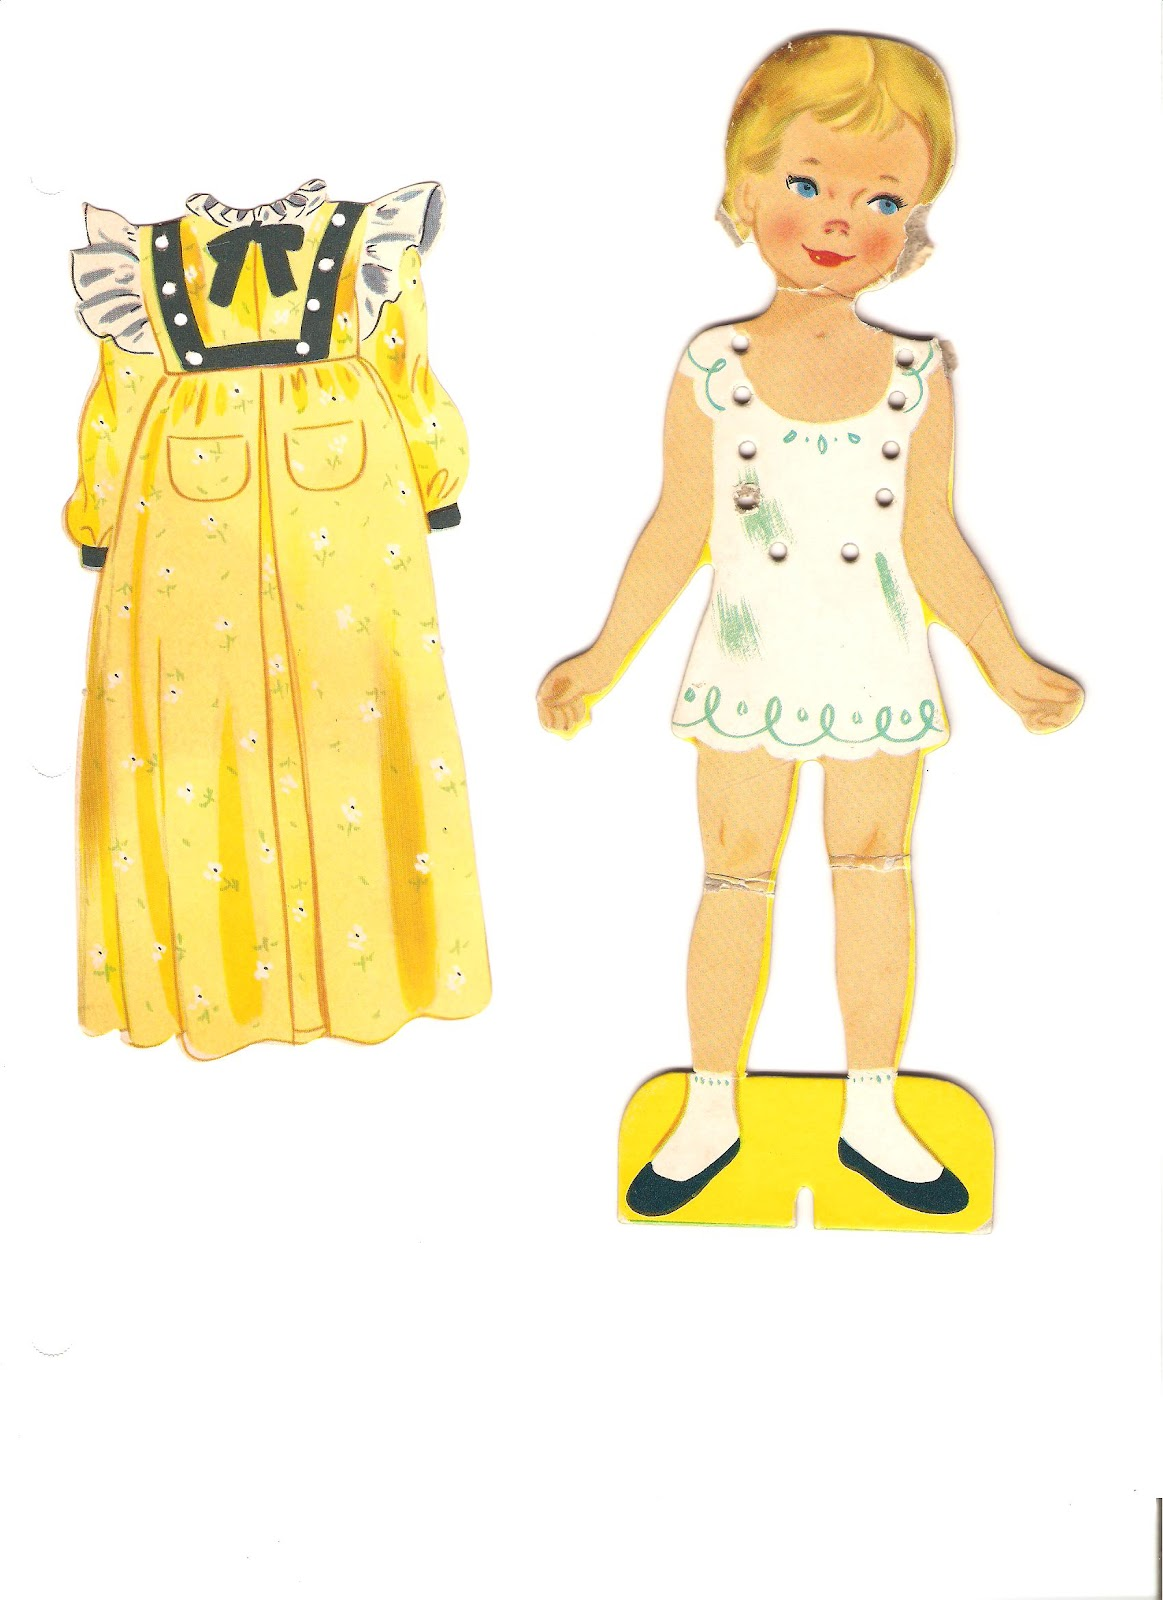 Miss Missy Paper Dolls Dolls With Lace On Clothes